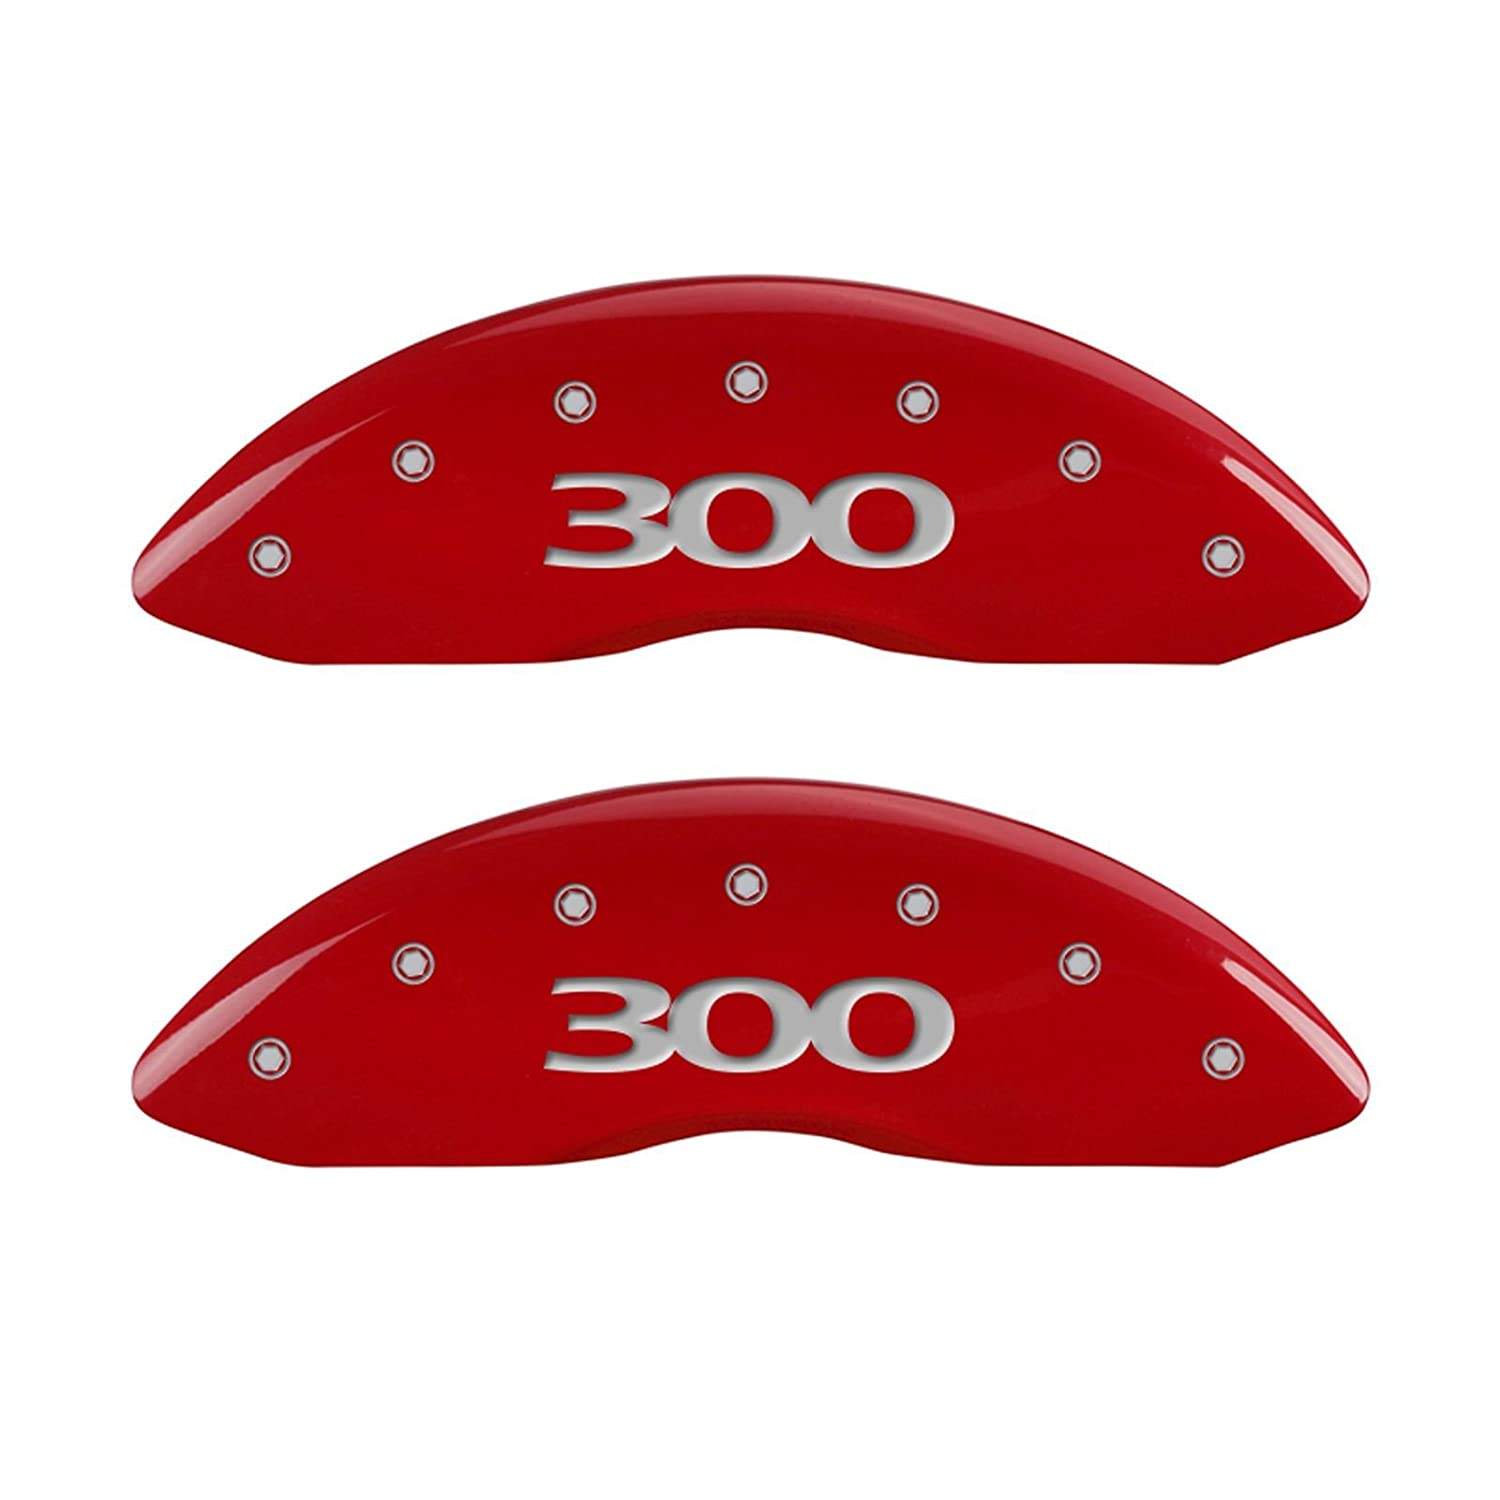 MGP Caliper Covers (32004S300RD) '300' Engraved Caliper Cover with Red Powder Coat Finish and Silver Characters, (Set of 4)